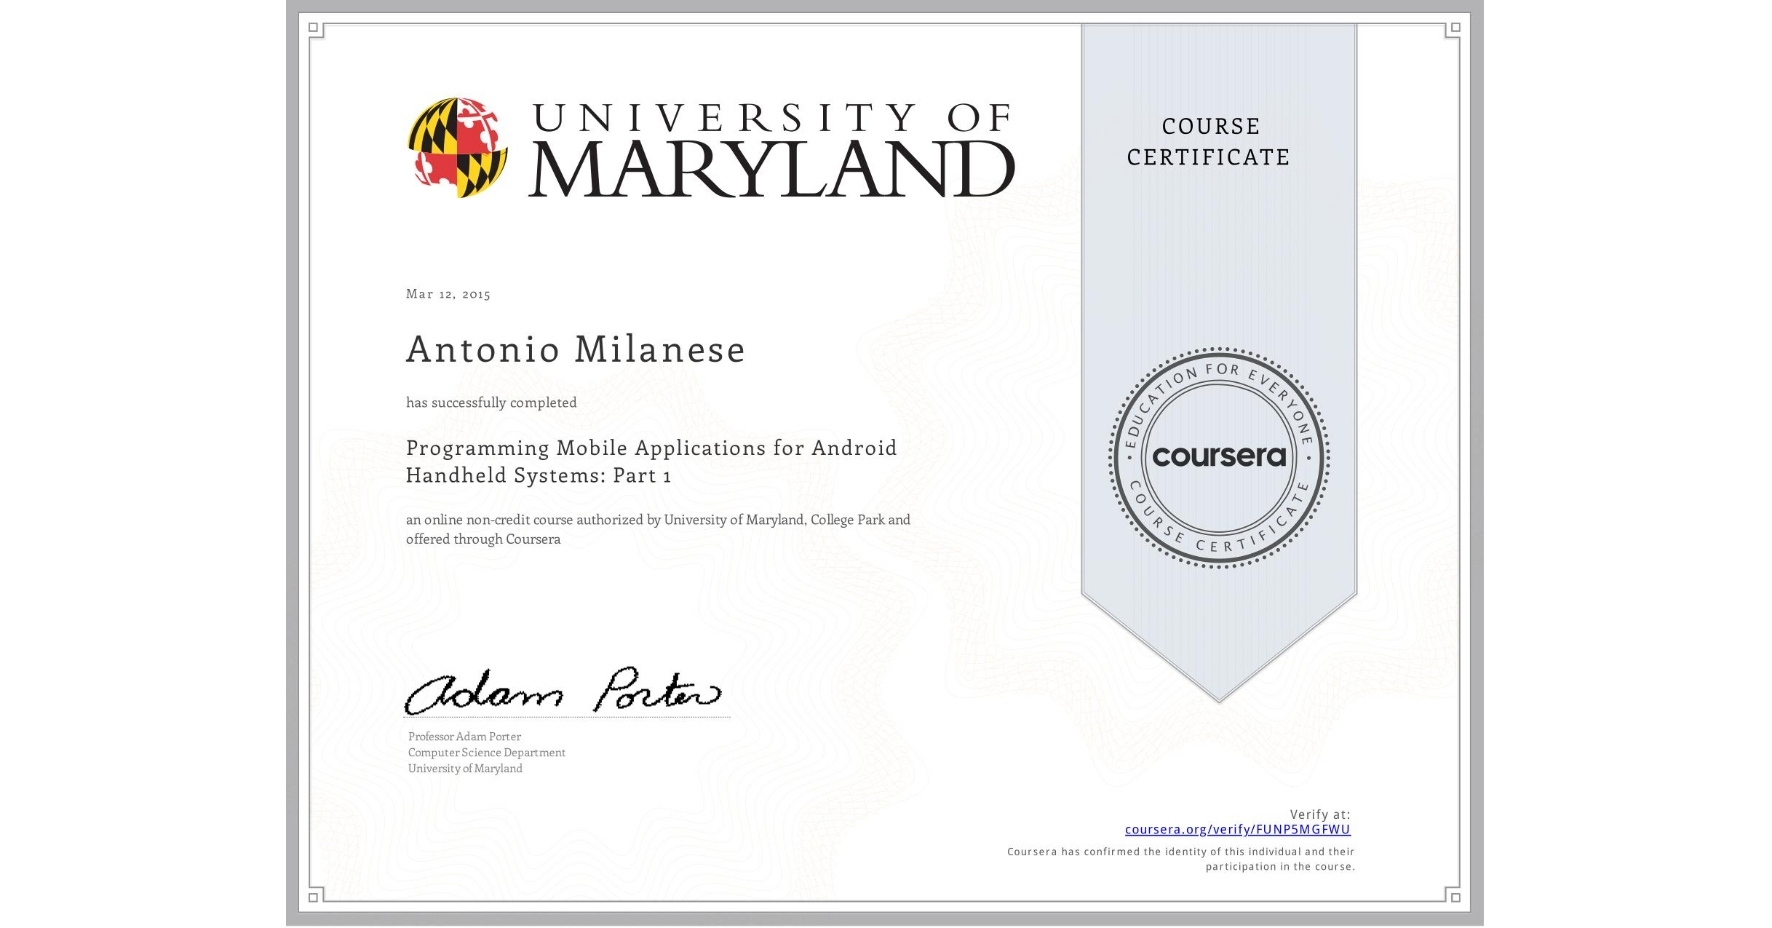 View certificate for Antonio Milanese, Programming Mobile Applications for Android Handheld Systems: Part 1, an online non-credit course authorized by University of Maryland, College Park and offered through Coursera